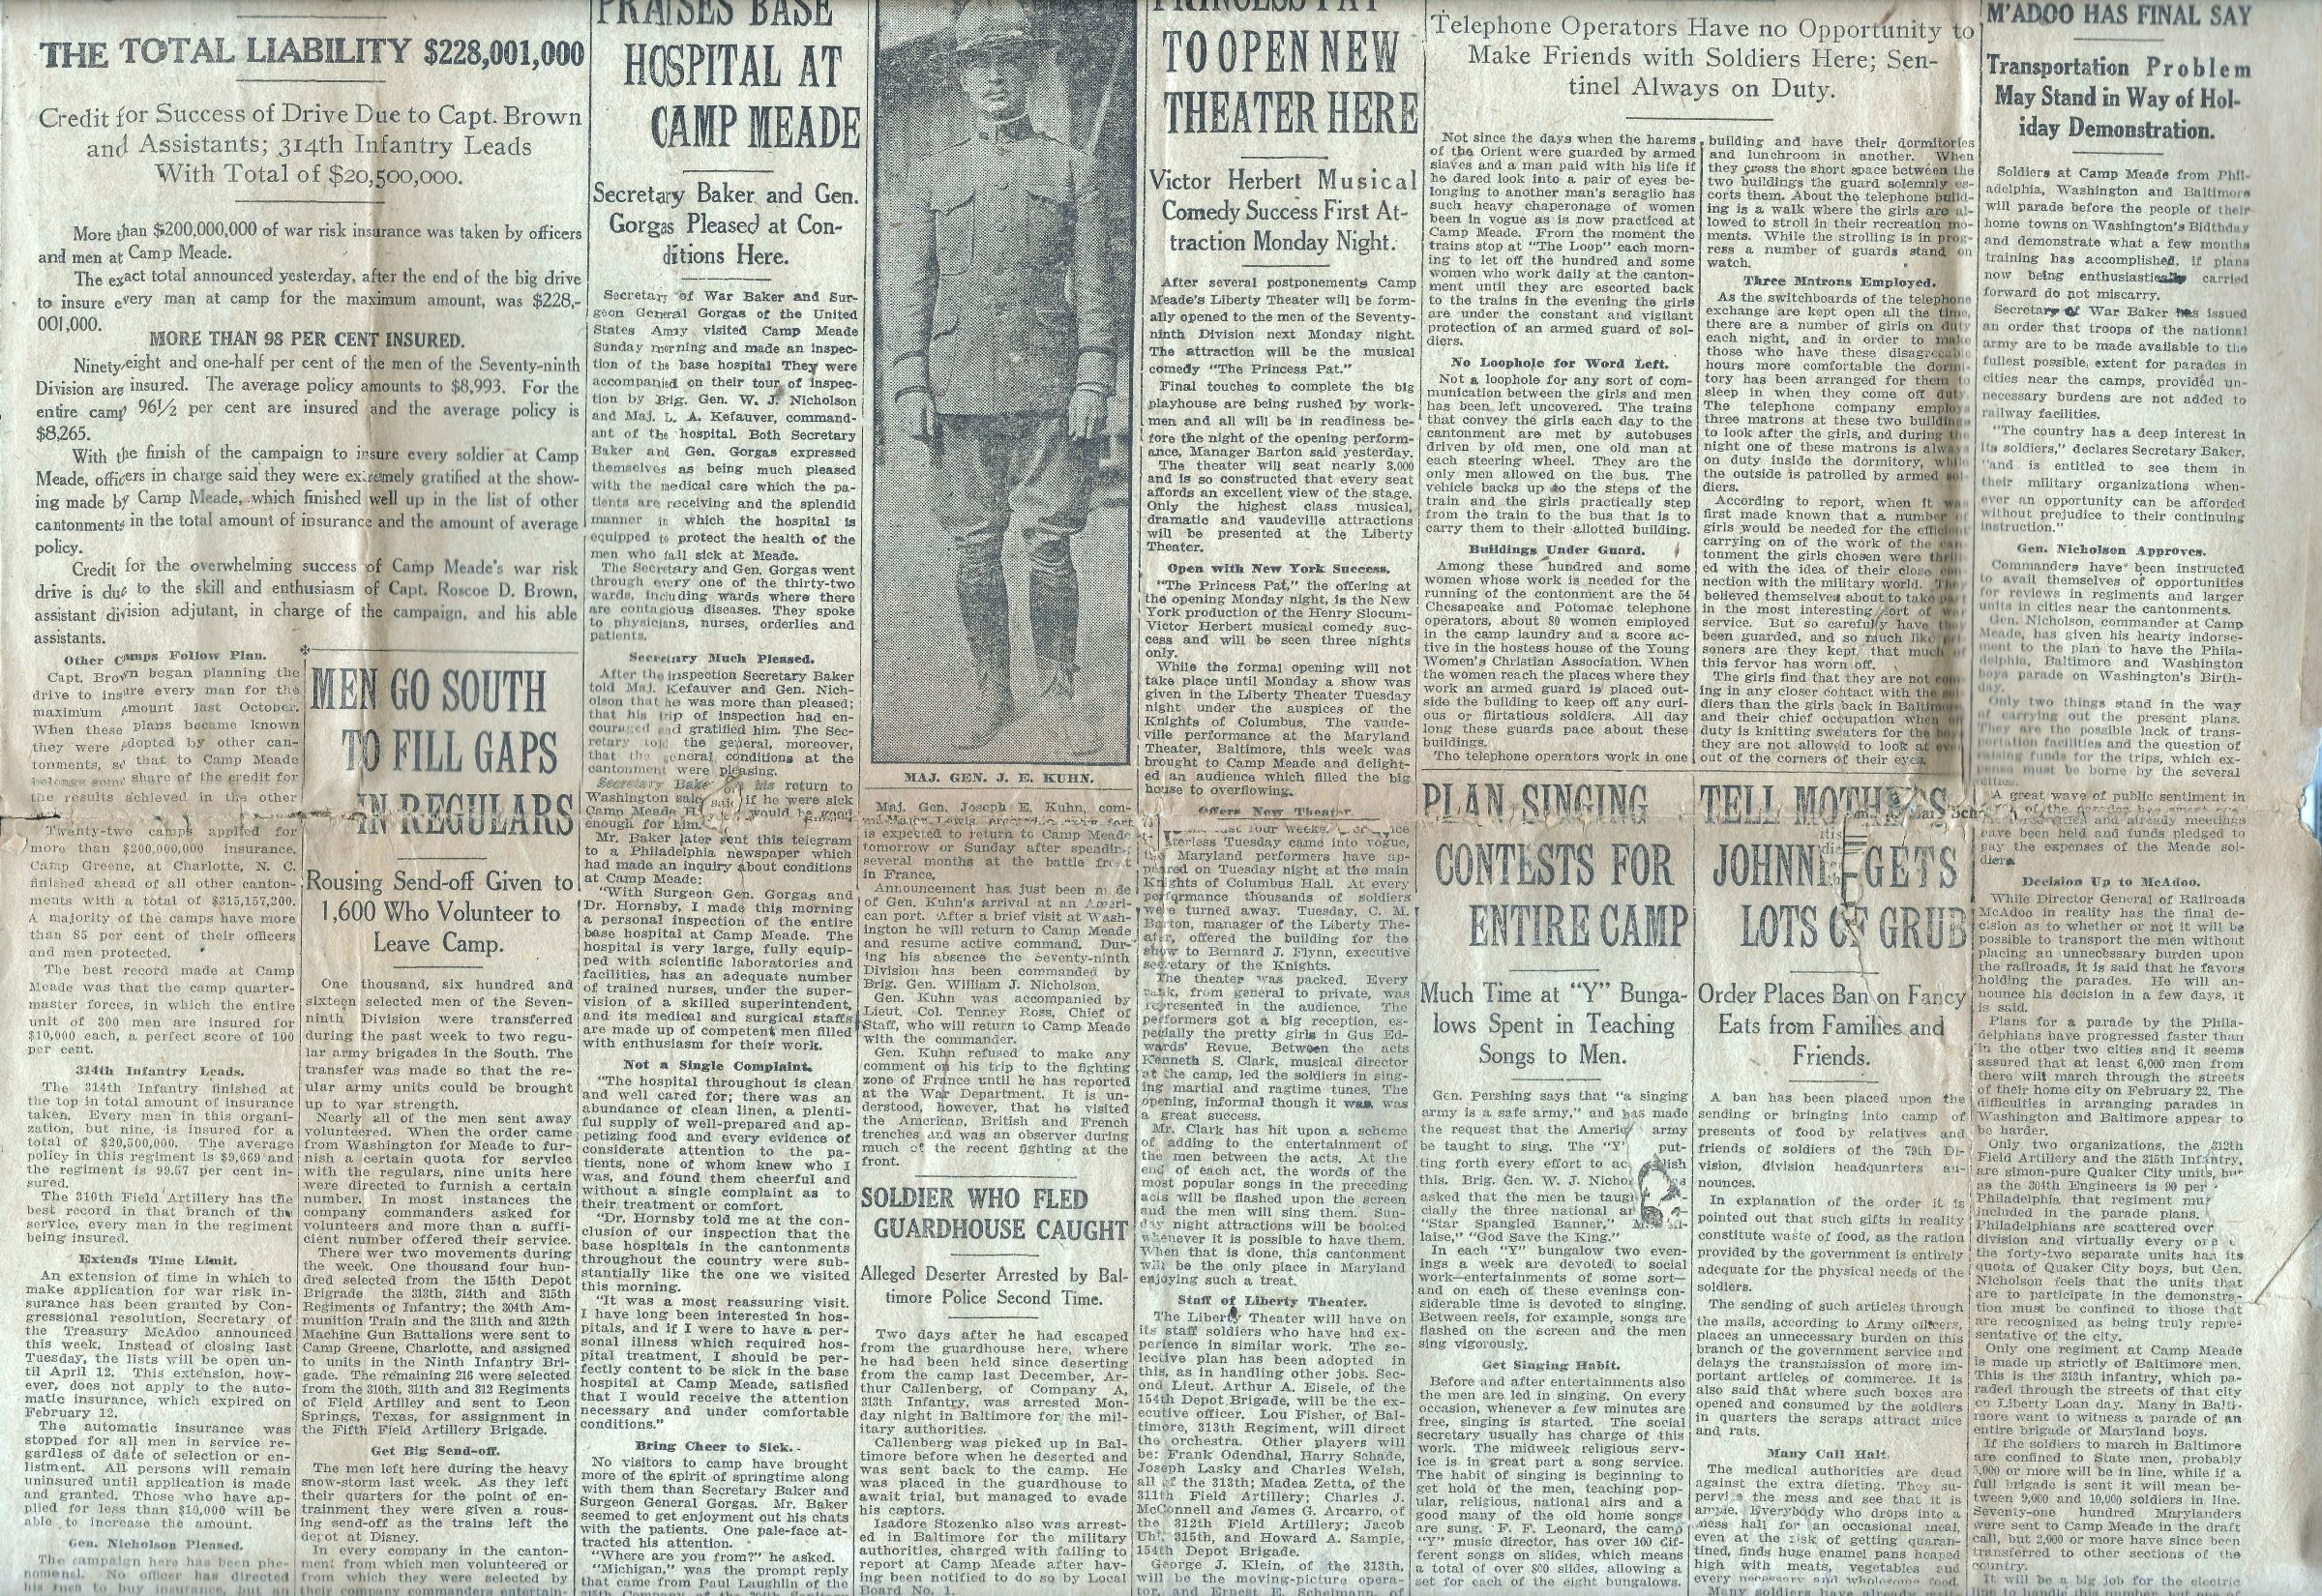 Camp Meade Herald newspaper - February 15 1918 - Page 1 Middle